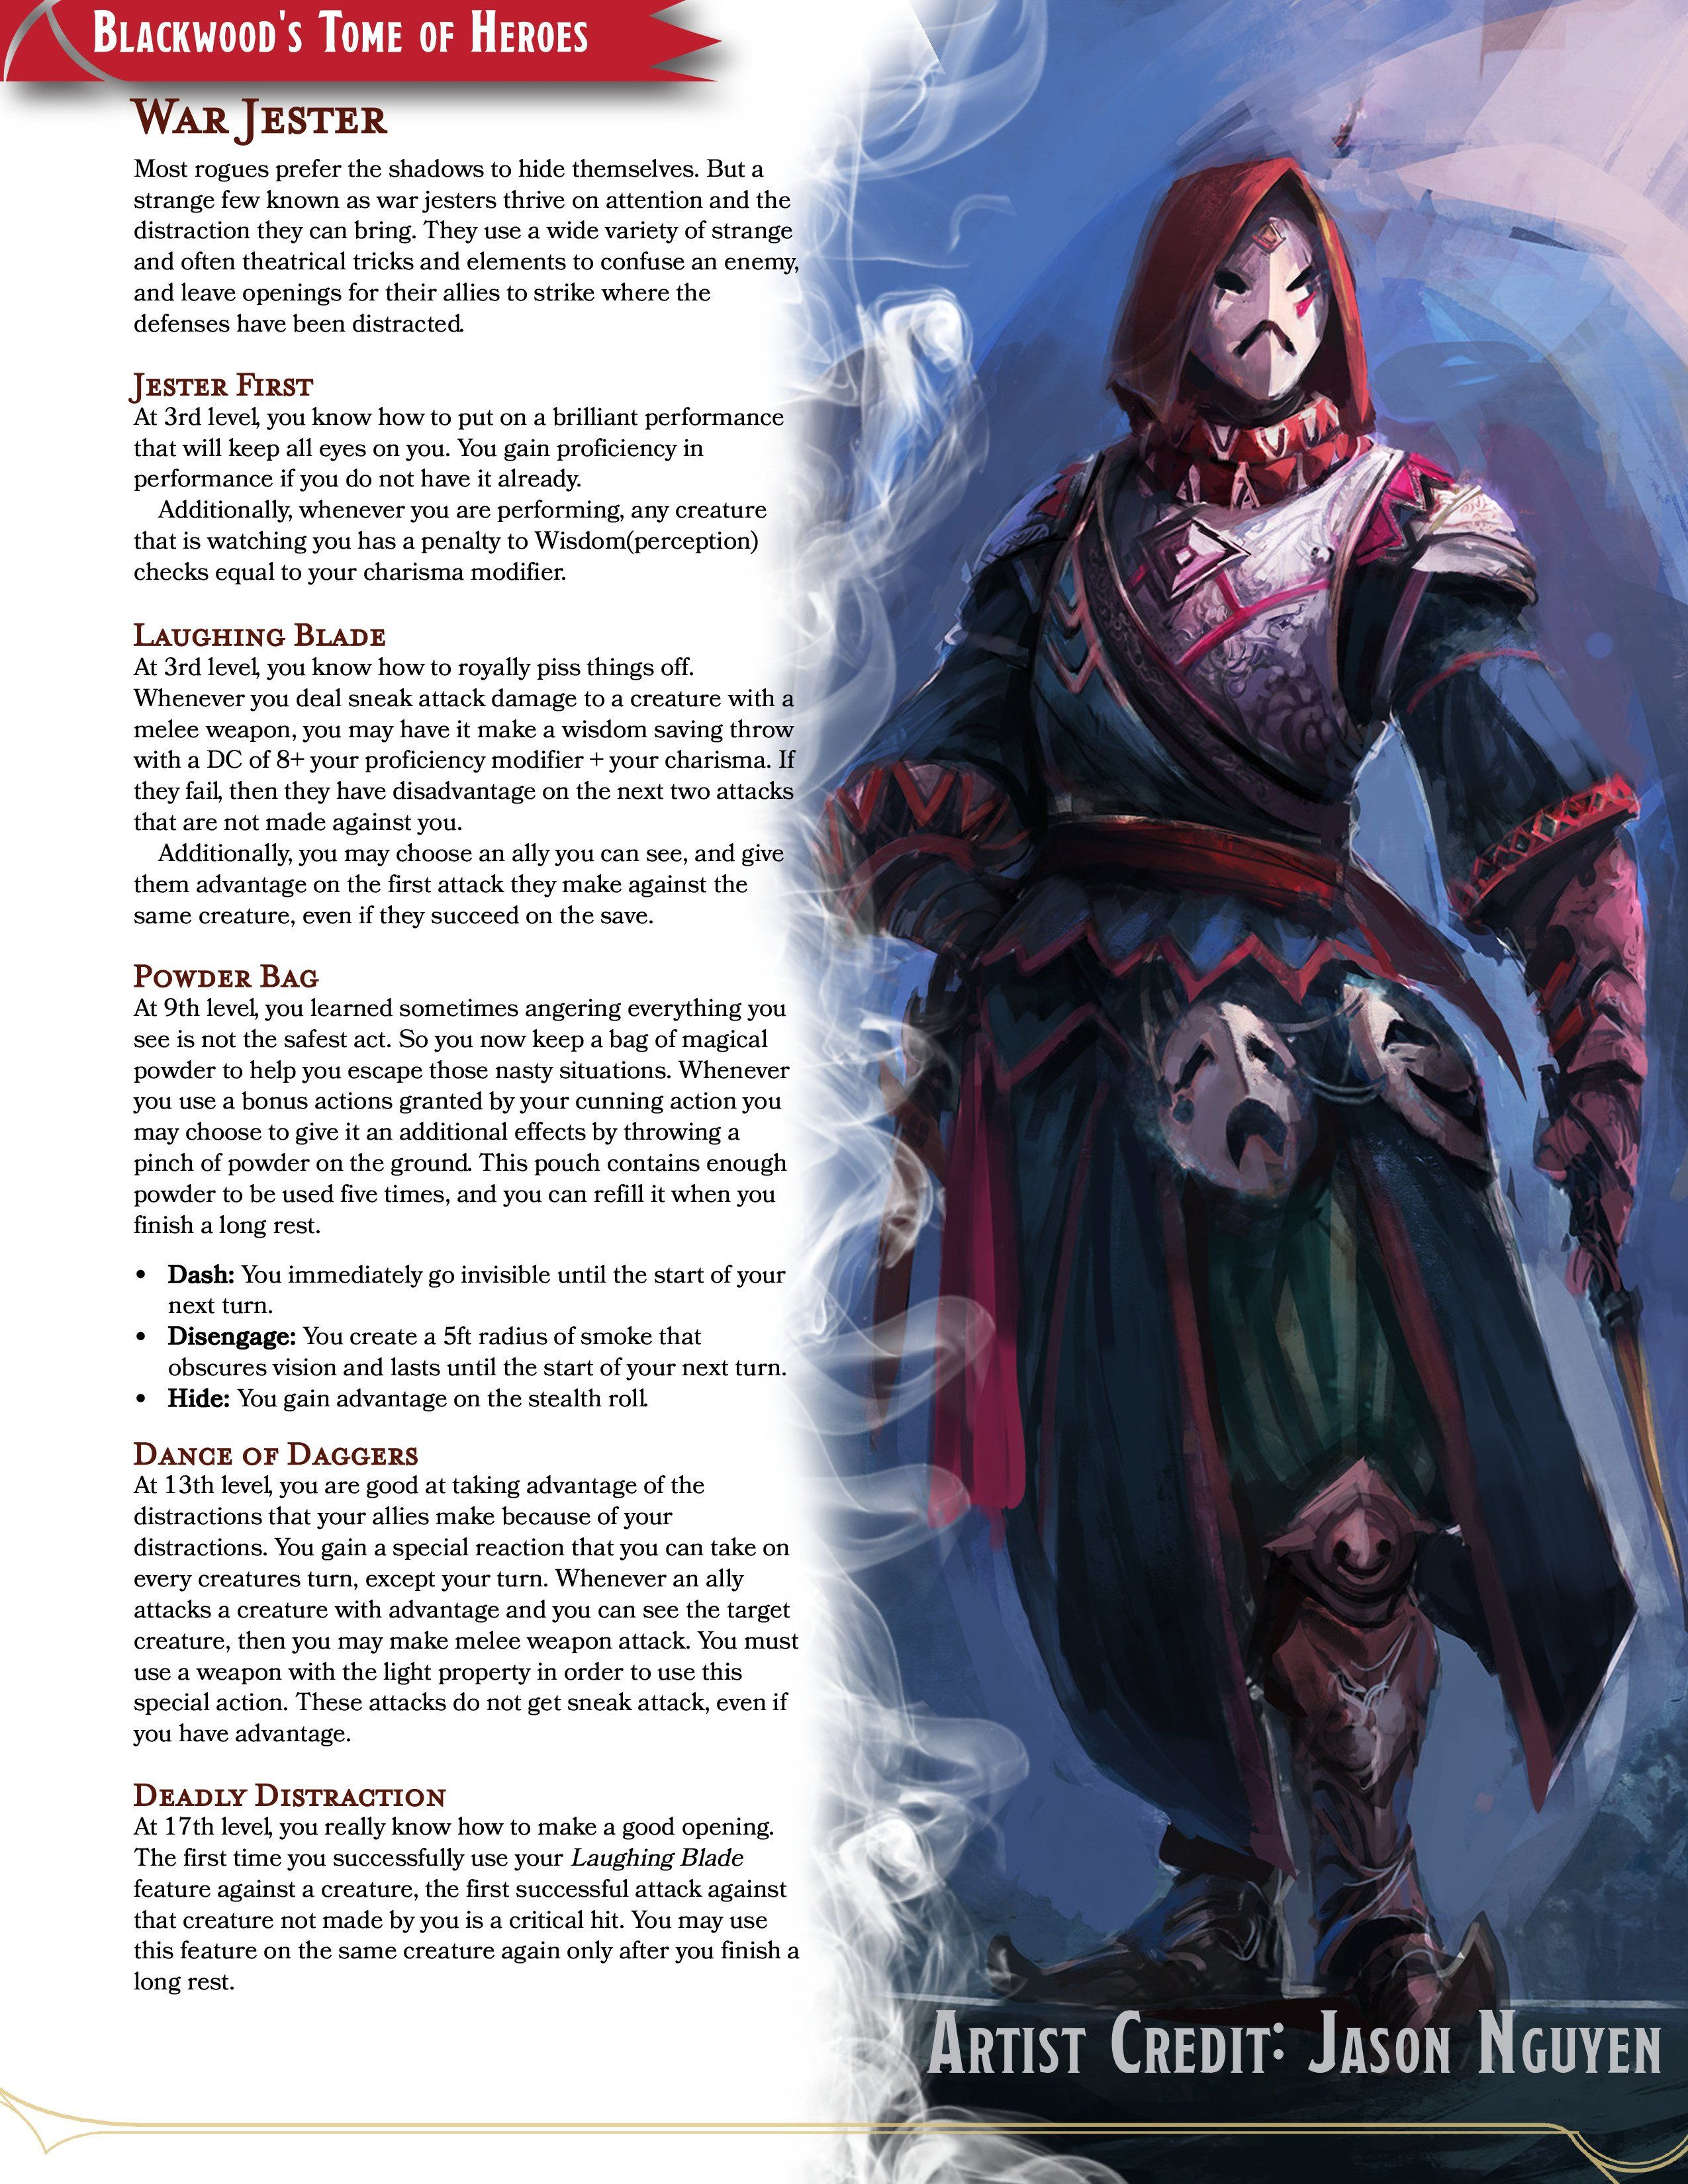 War Jester // A rogue archetype that lives for the